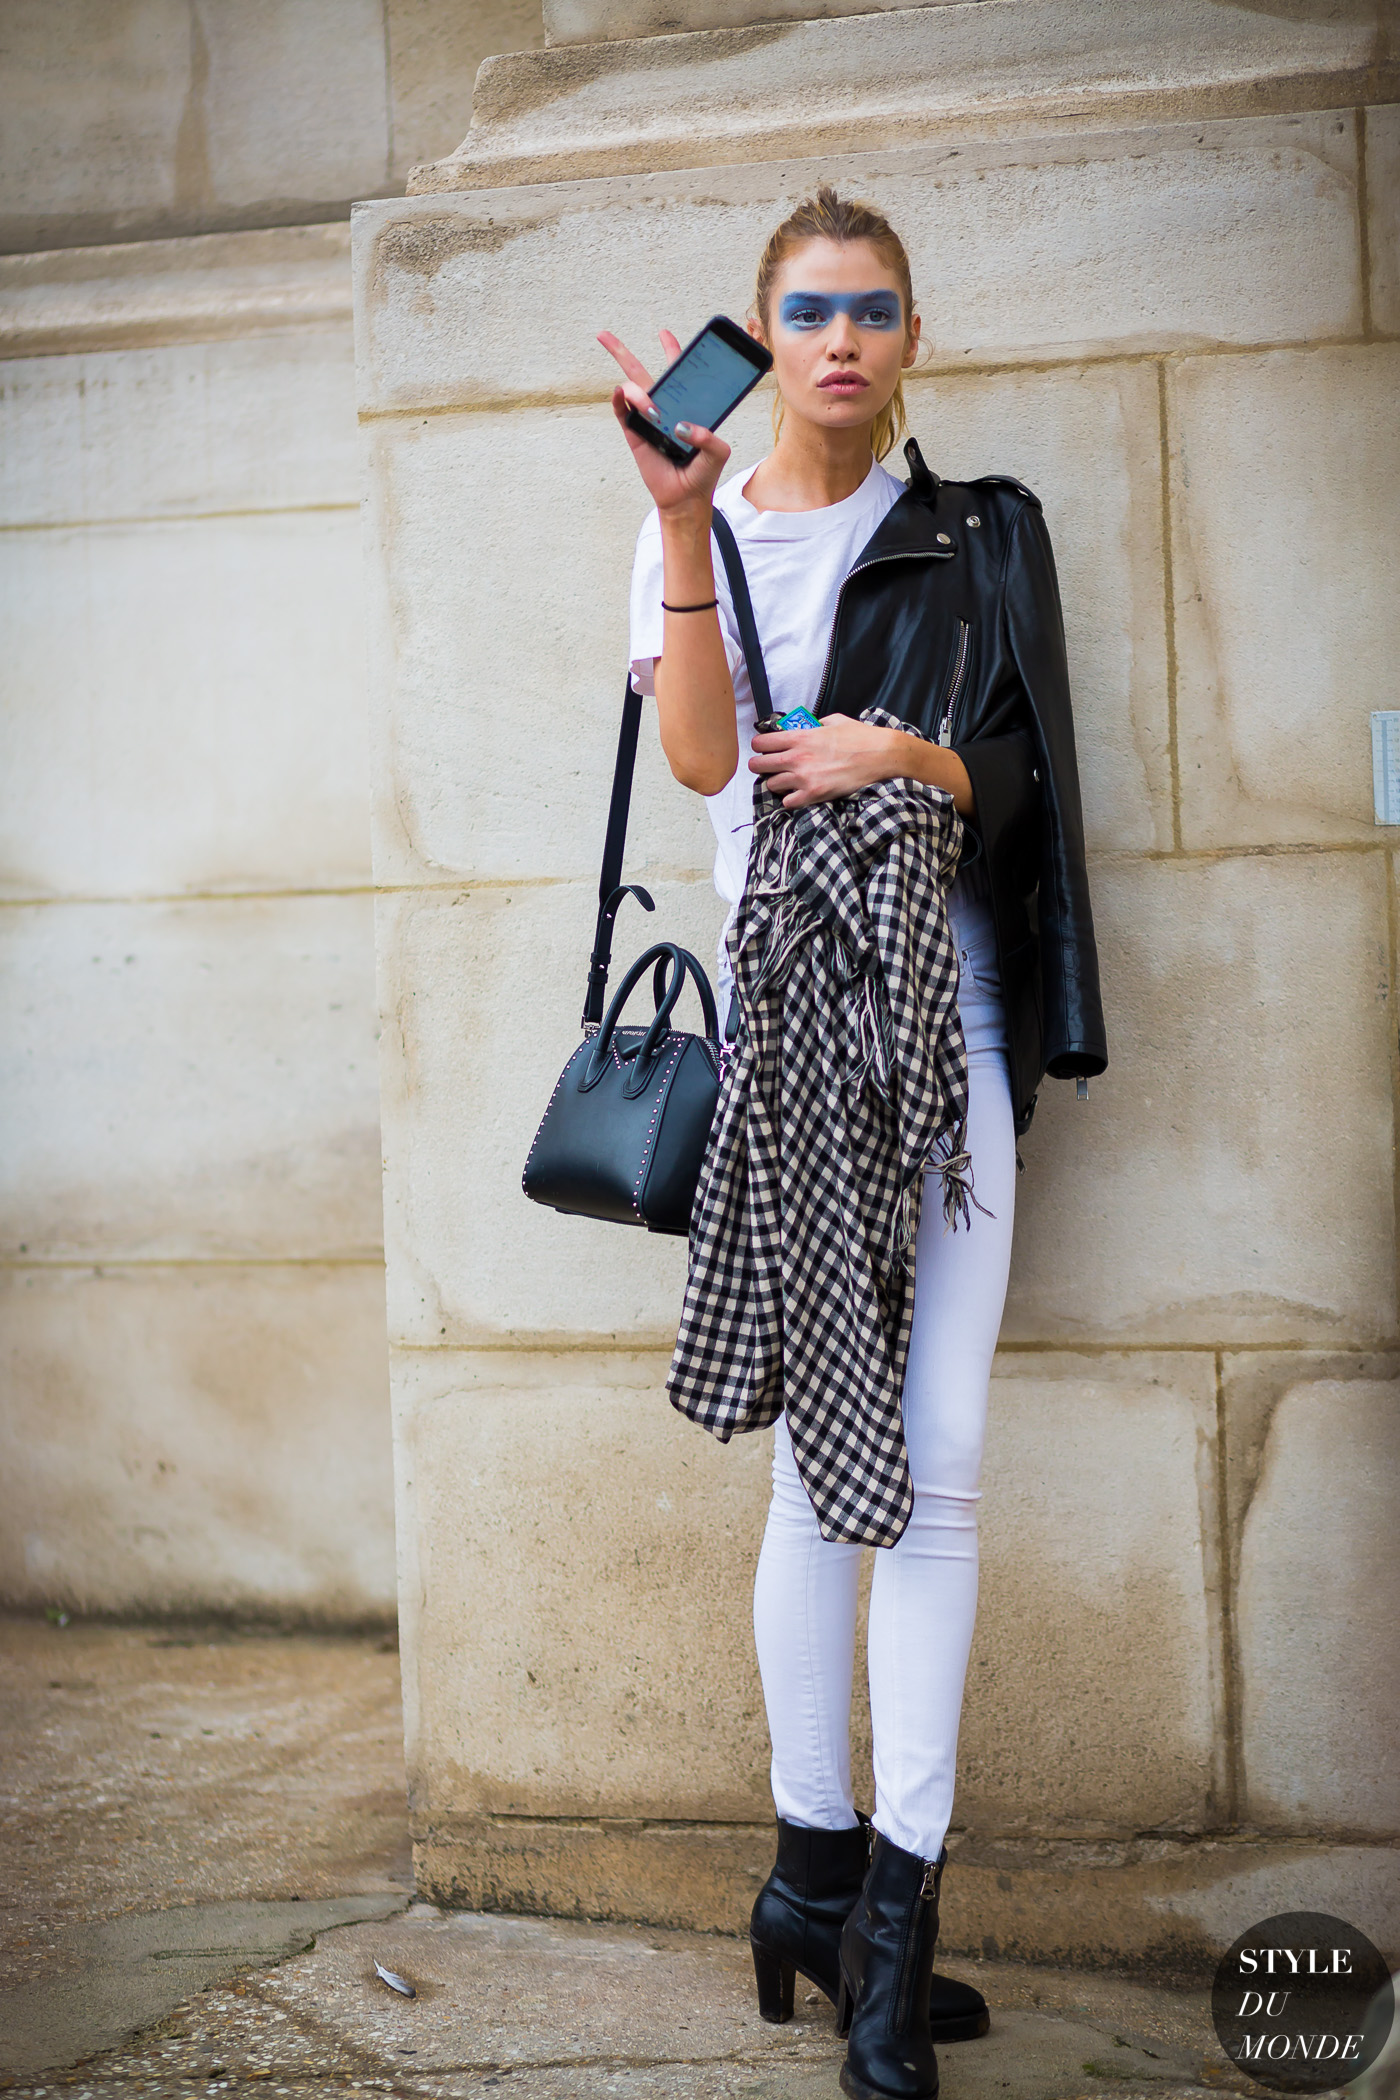 ... Fashion Streetsnaps by STYLEDUMONDE Street Style Fashion Photography